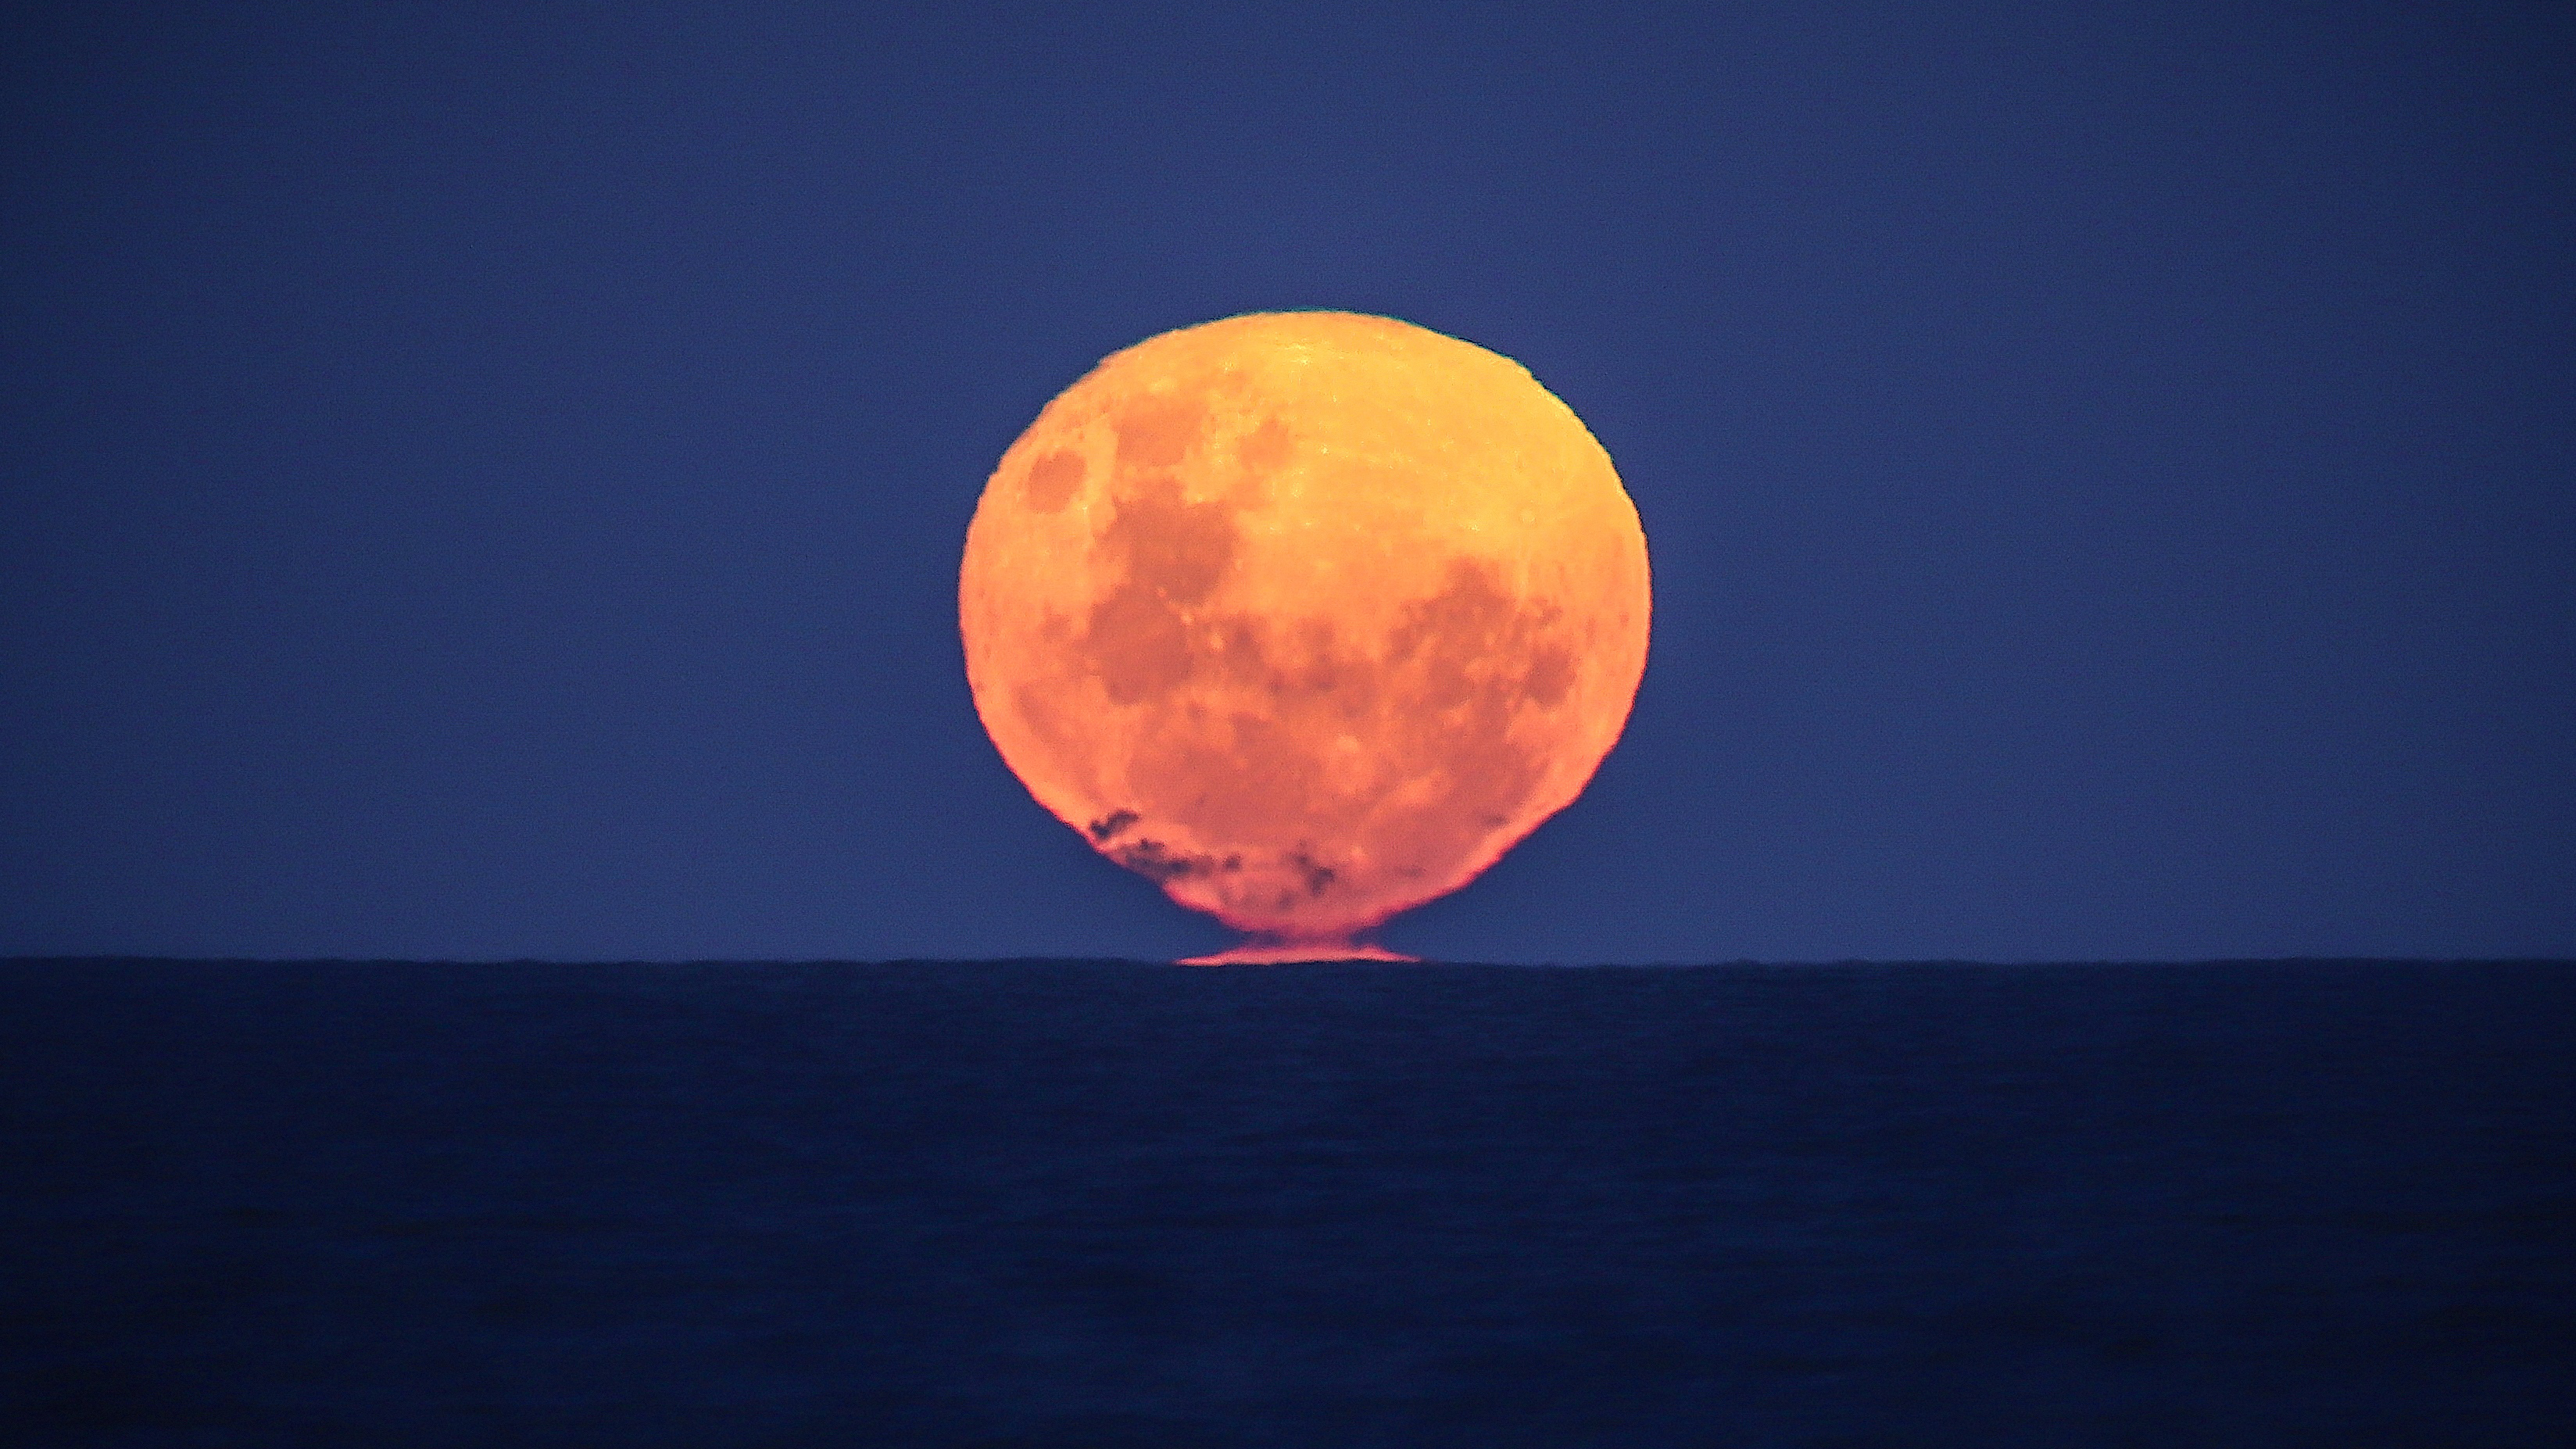 It's your last chance to see a supermoon this year with the 'strawberry' moon